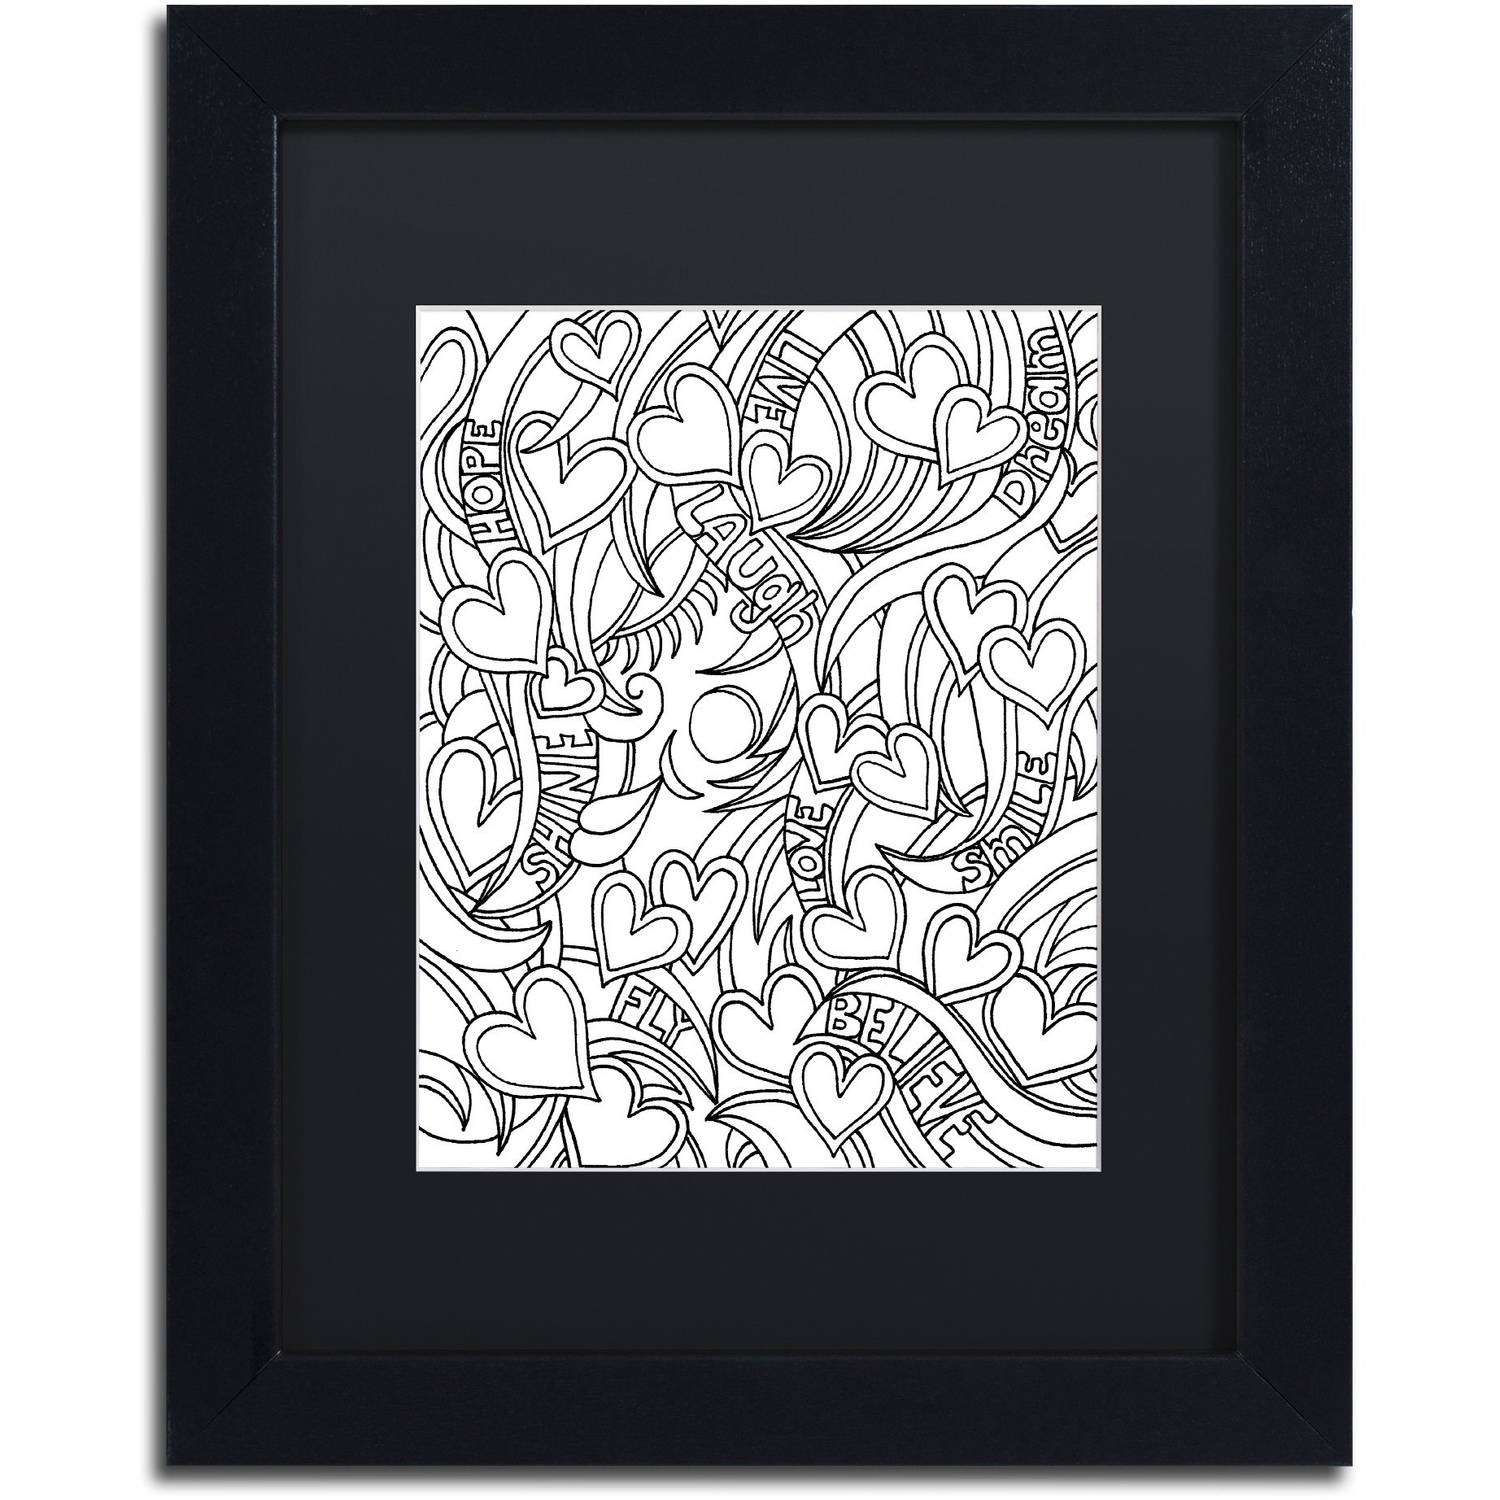 Trademark Global LLC Trademark Fine Art Mixed Coloring Book 41 Canvas Art by Kathy G. Ahrens, Black Matte, Black Frame